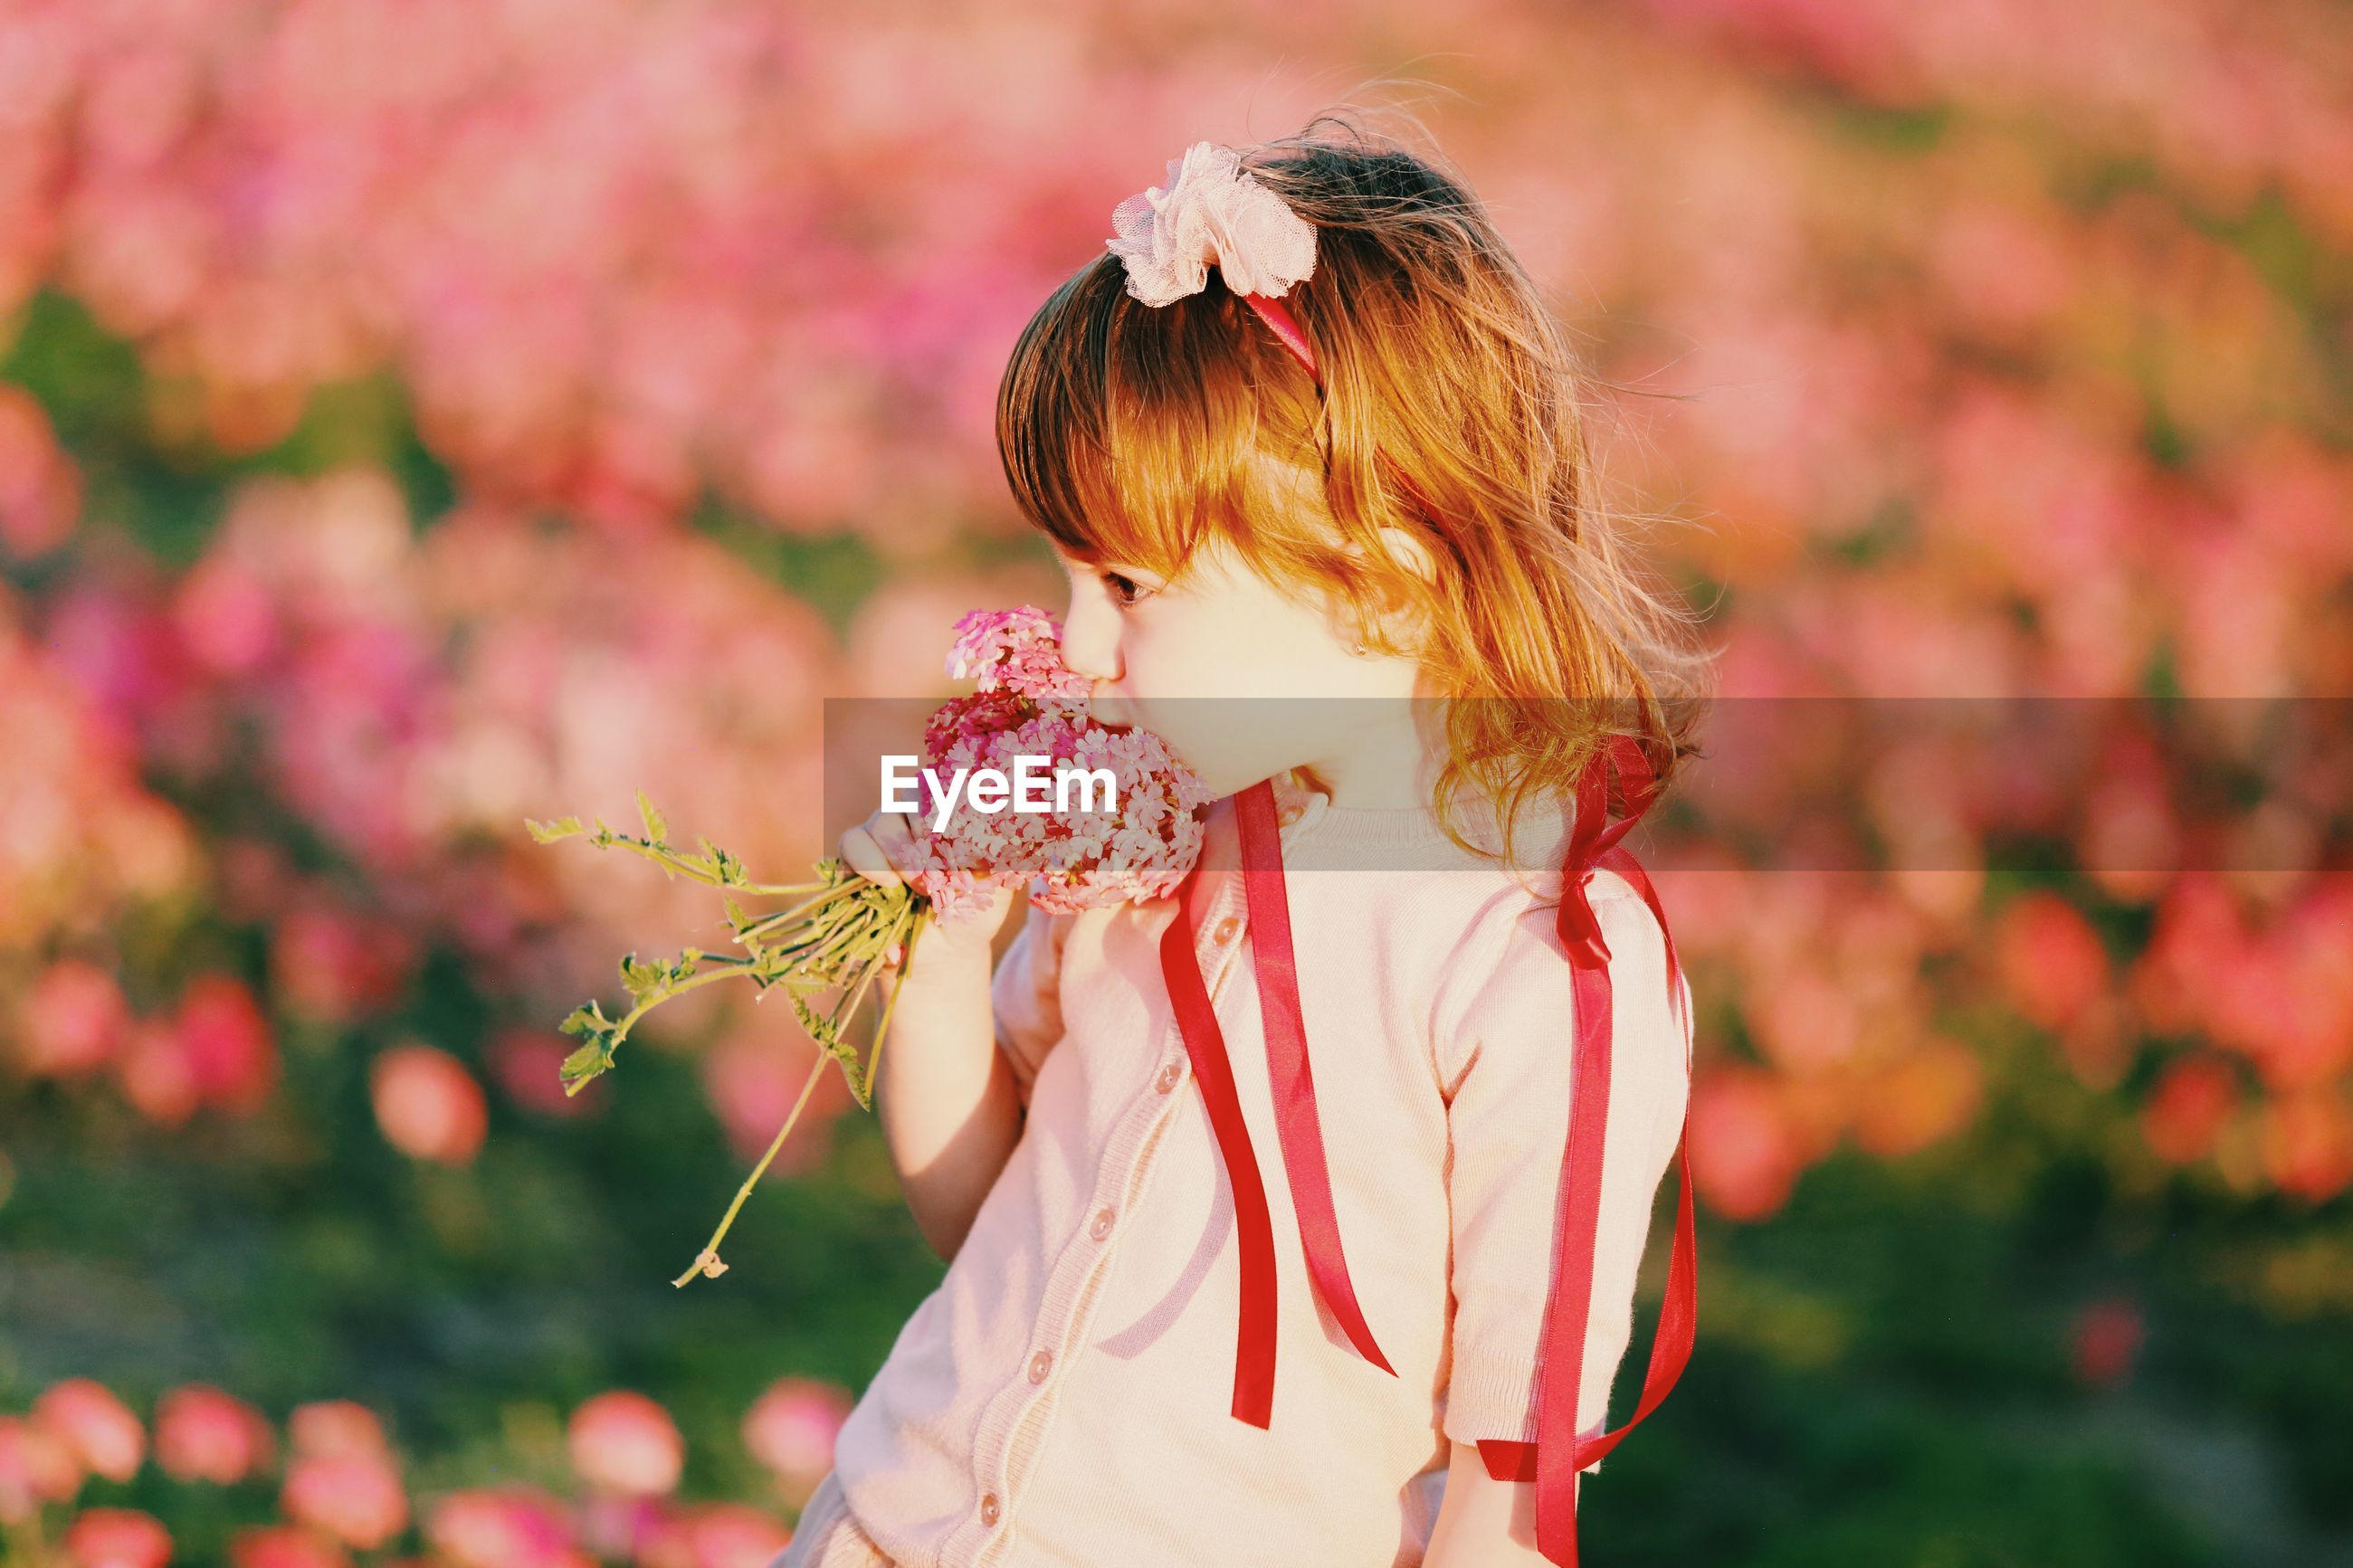 Cute girl smelling pink flowers while standing on land